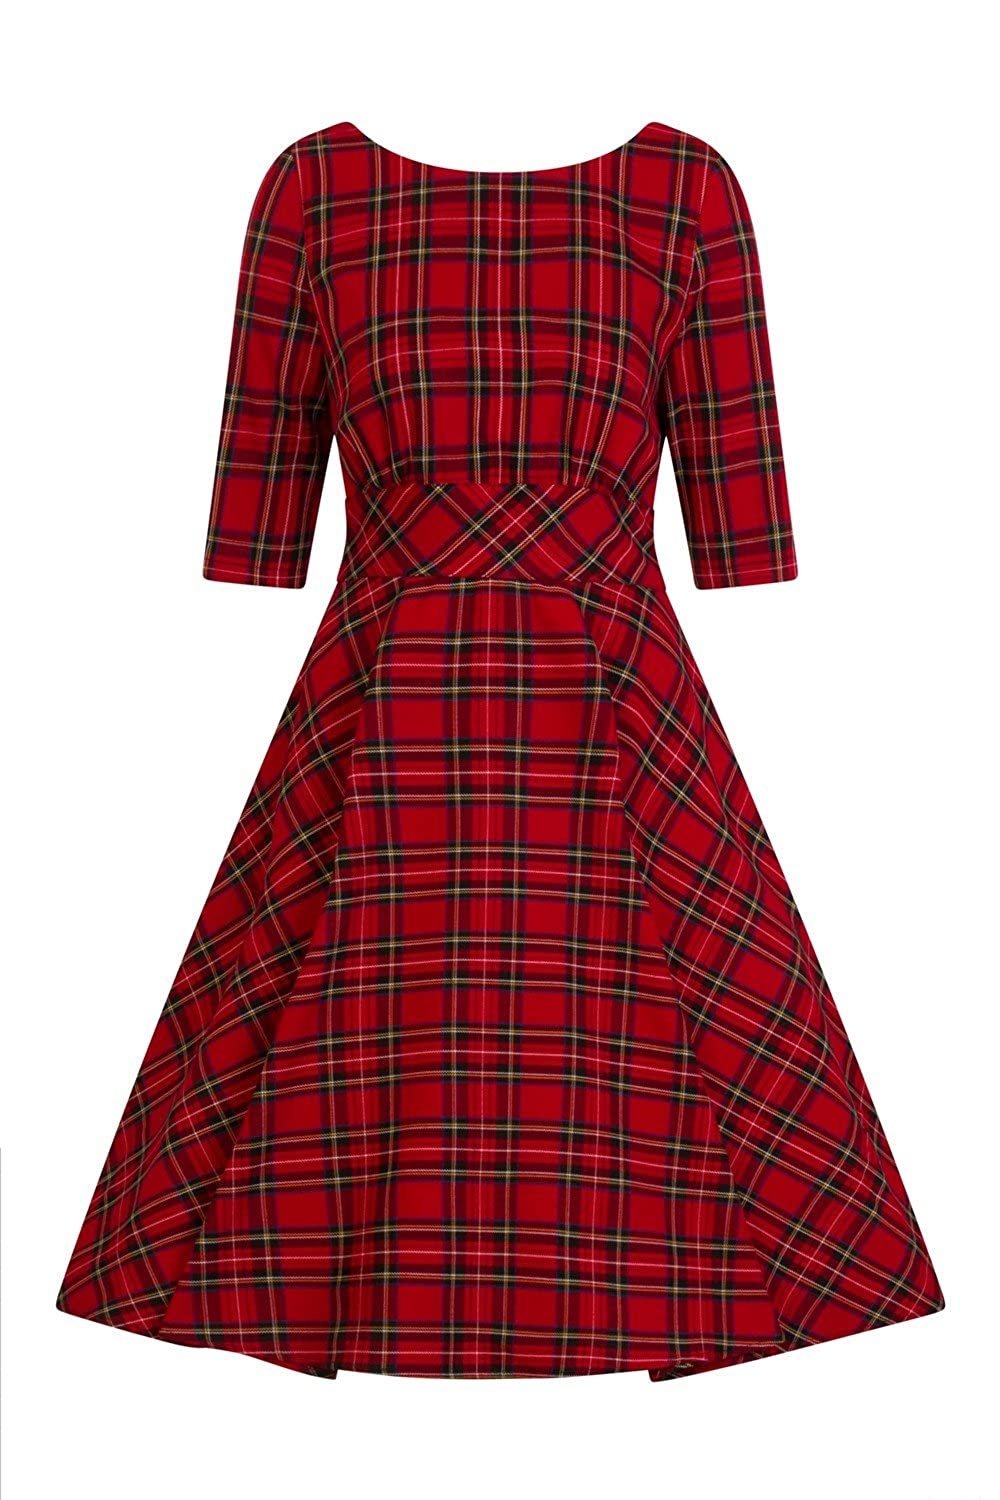 60s 70s Plus Size Dresses, Clothing, Costumes Hell Bunny Irvine Tartan 1950s Vintage Retro Dress XS-4XL $72.99 AT vintagedancer.com